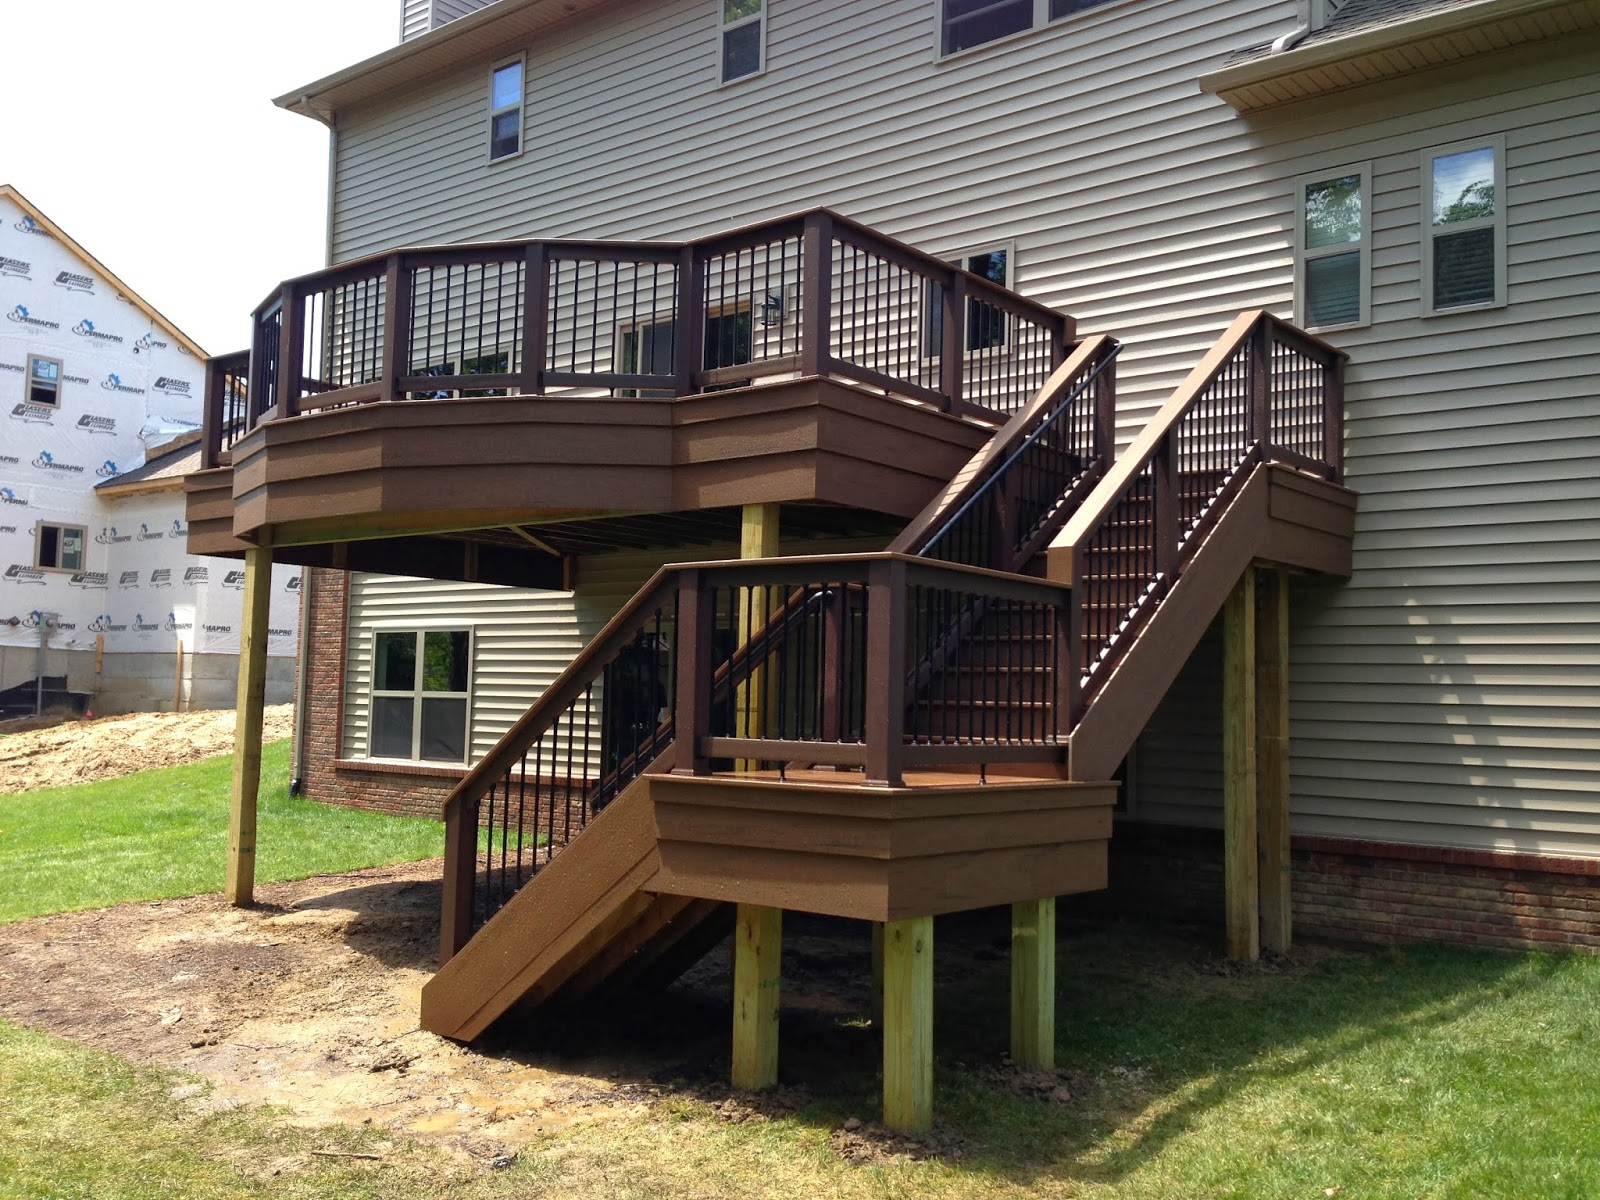 Outdoor Living: Deck designs from 2013 - Adding flair to a ... on Walkout Patio Ideas id=48466